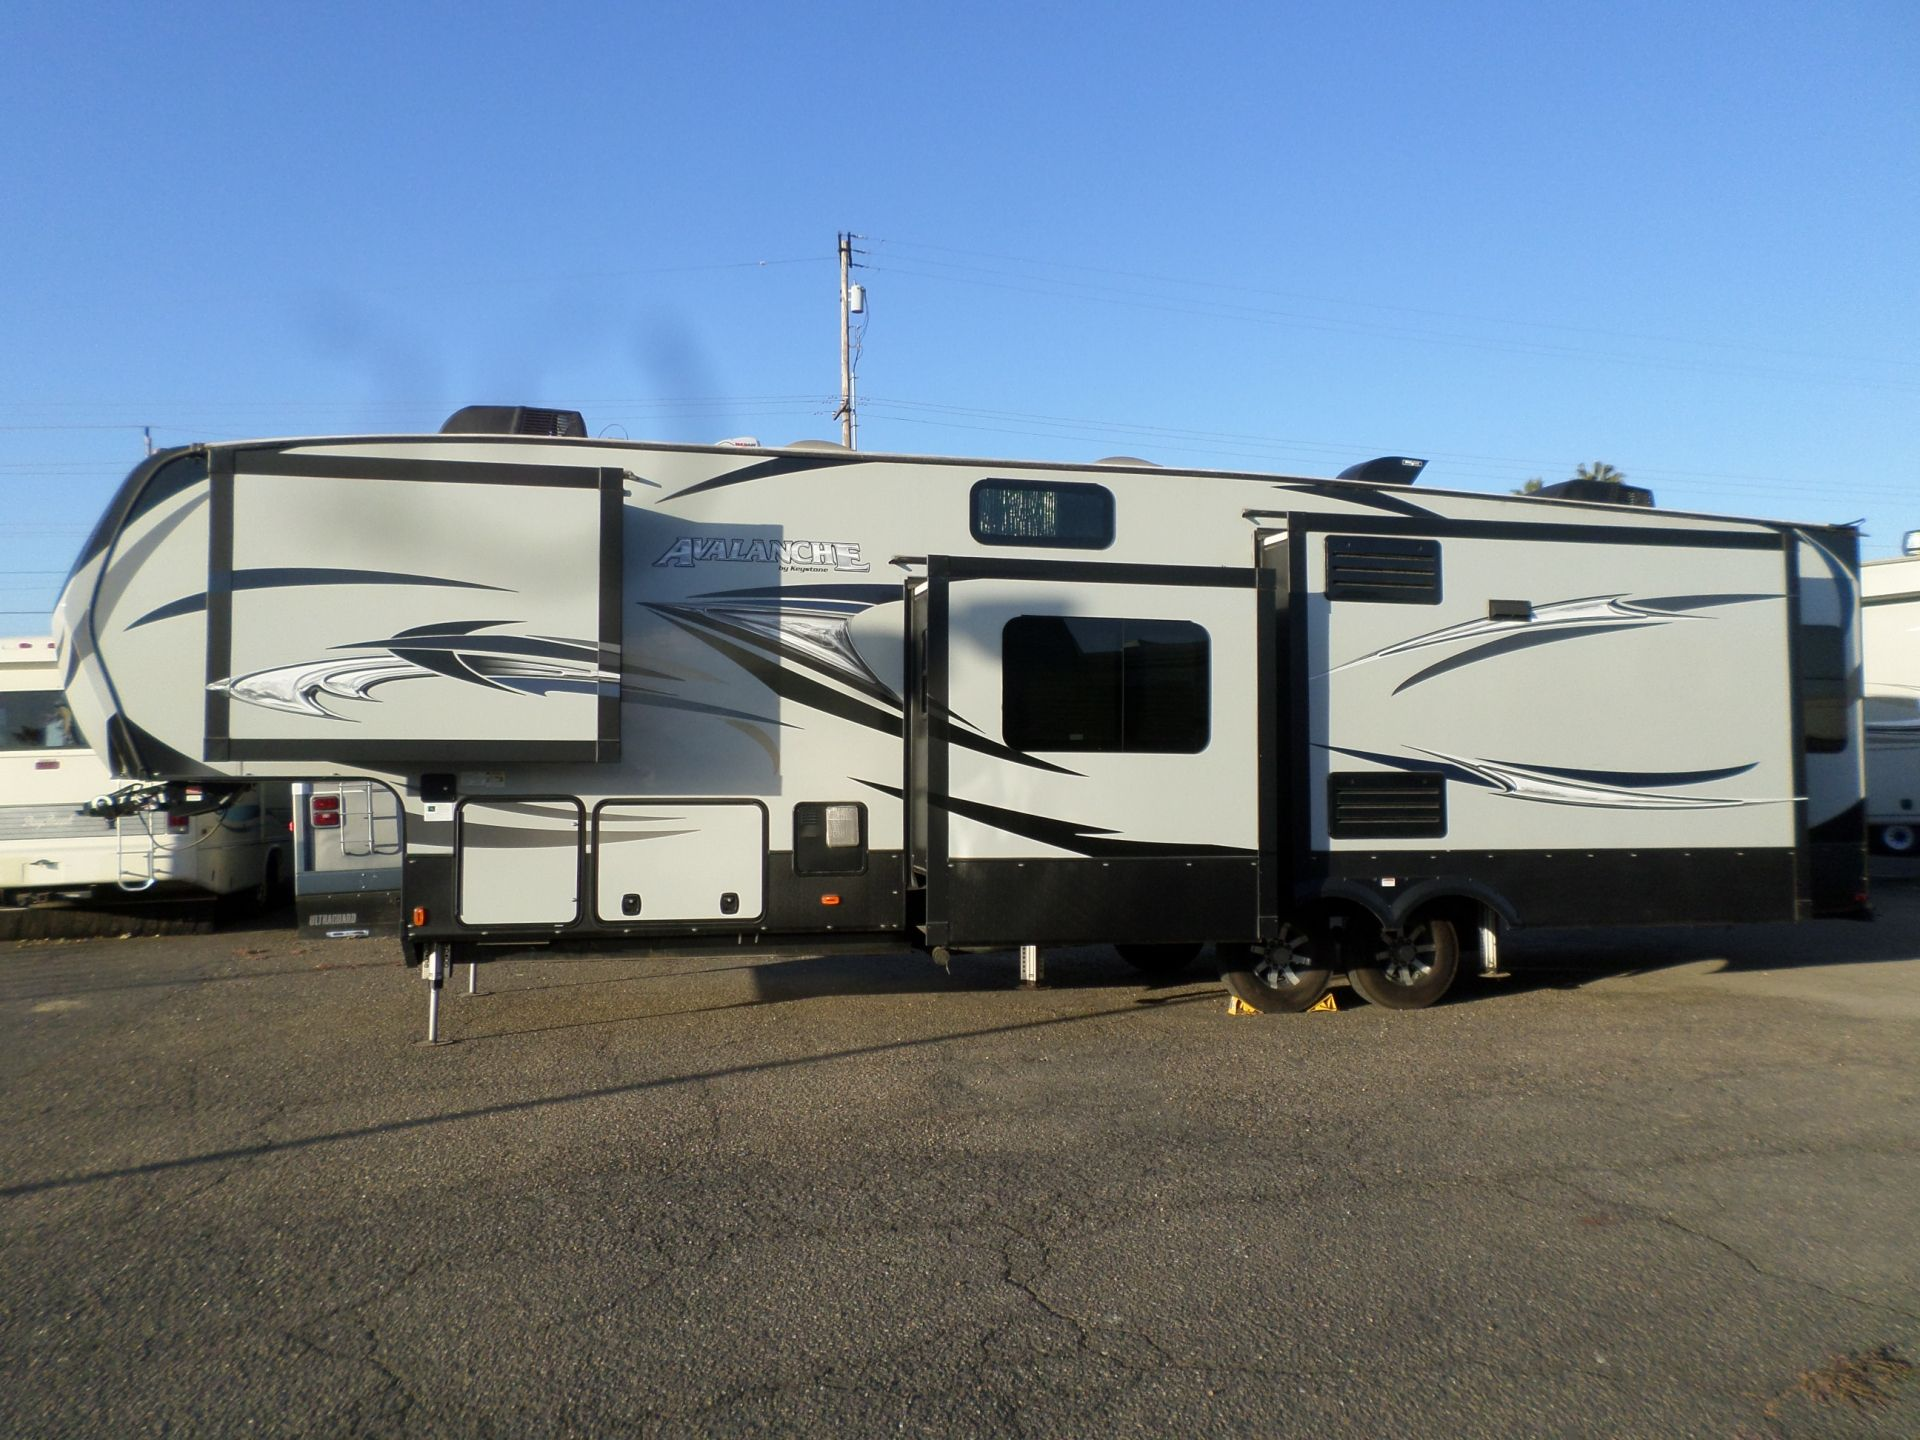 Rv For Sale 2017 Keystone Avalanche 5th Wheel 39 In Lodi Stockton Ca 5th Wheels For Sale Rv For Sale 5th Wheels